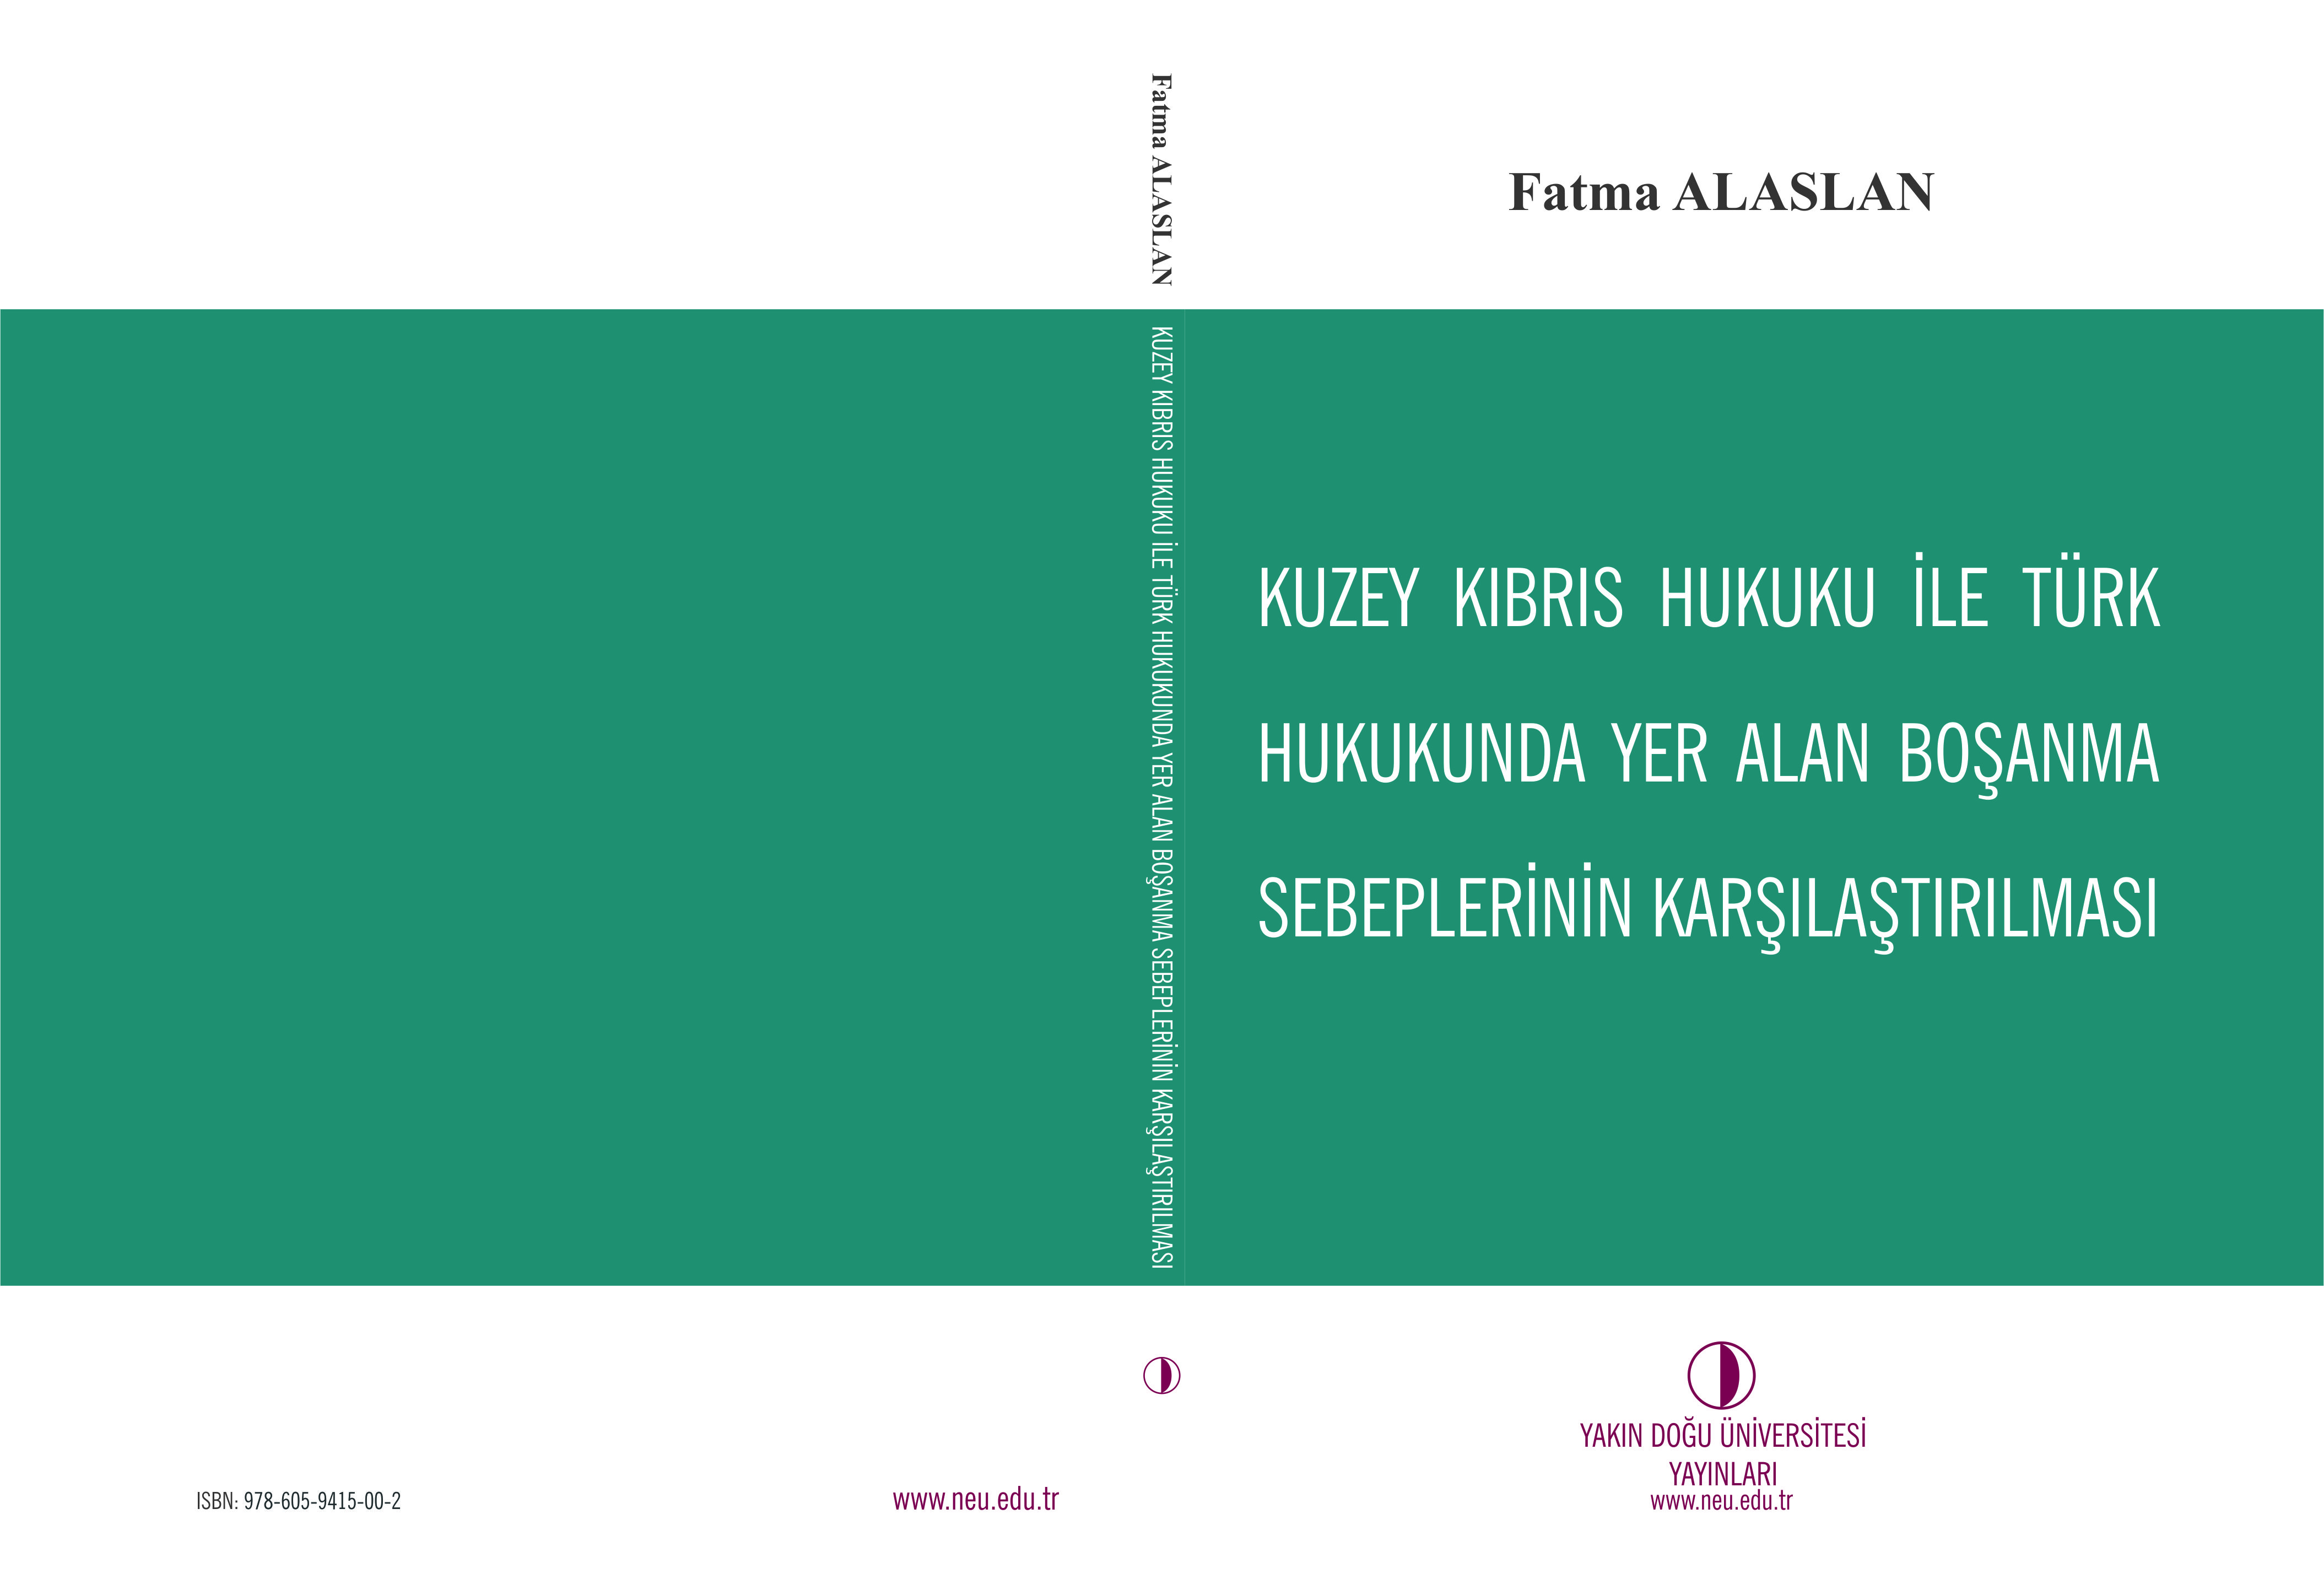 The book titled comparative book of divorce causes included in North Cyprus Law and Turkish Law published by Near East University Press